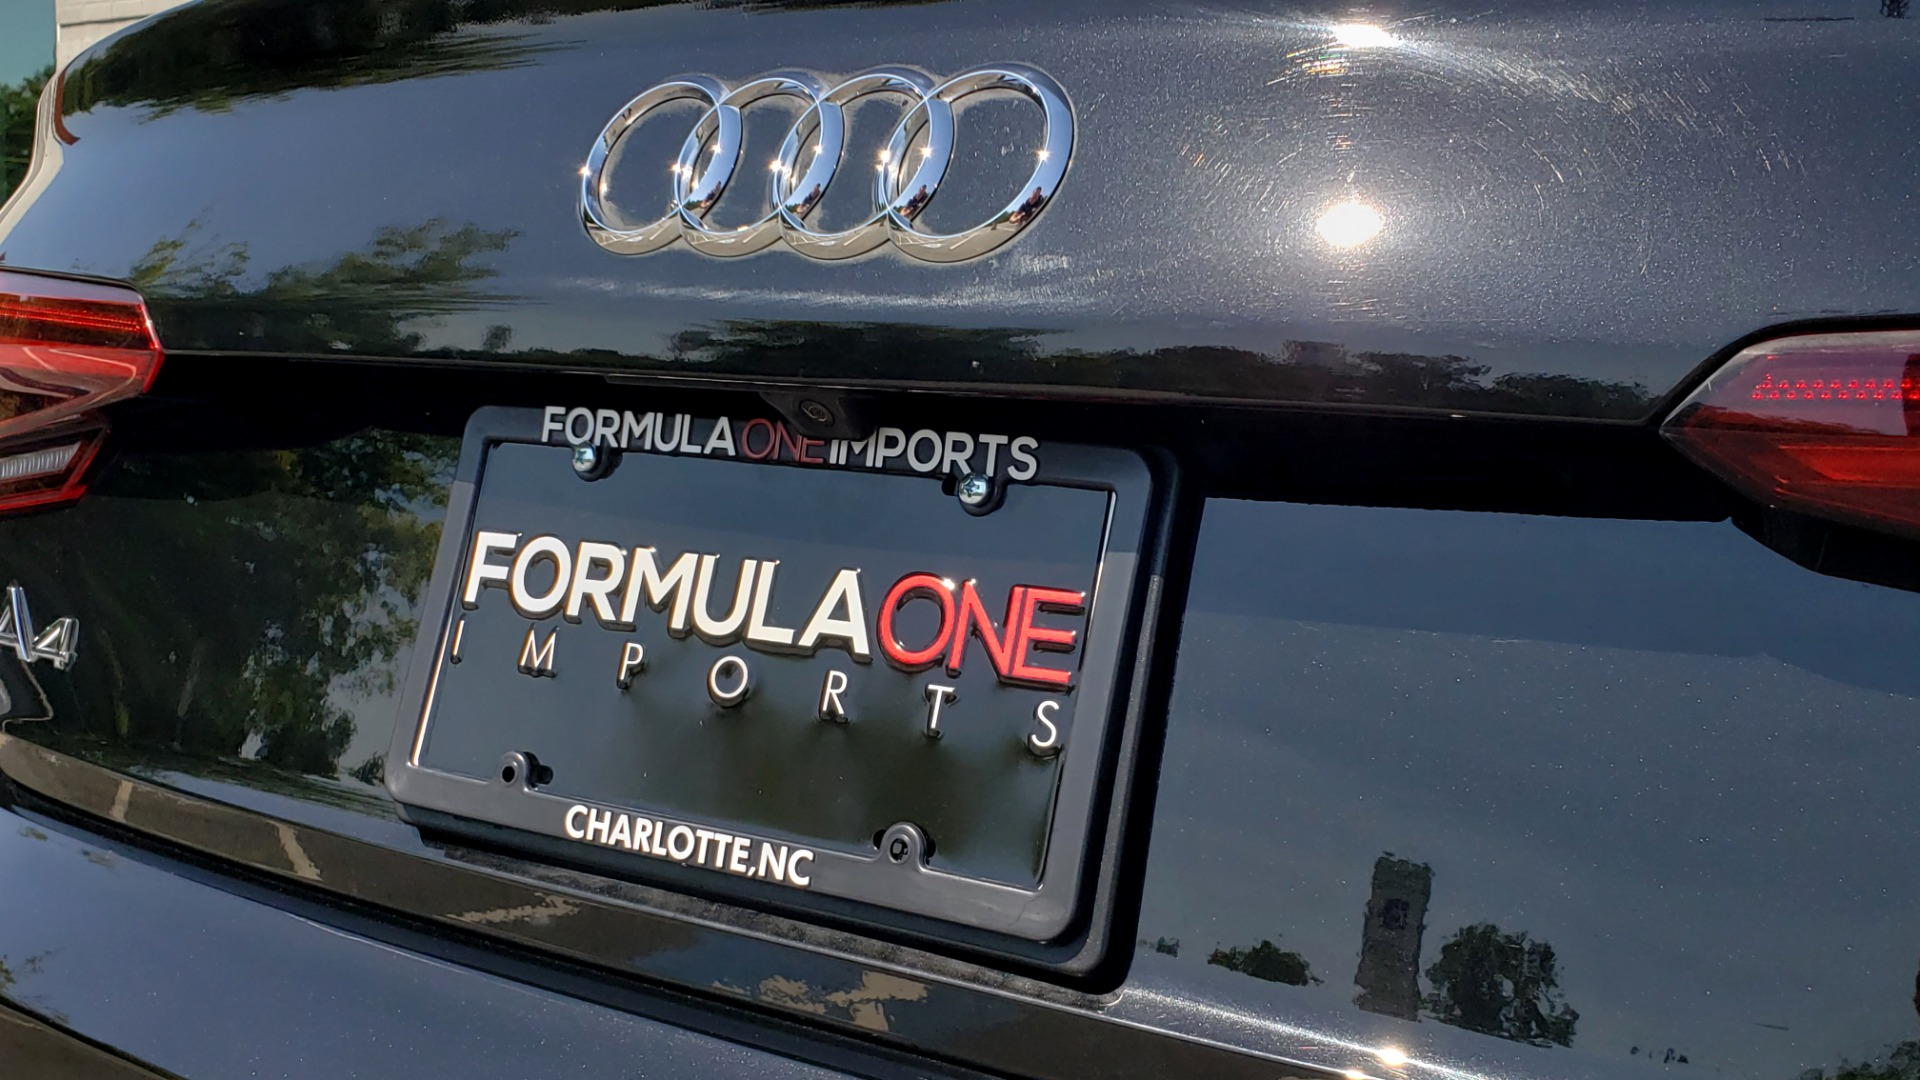 Used 2018 Audi A4 PREMIUM PLUS 2.0T / NAV / SUNROOF / B&O SND / CLD WTHR / REARVIEW for sale $30,695 at Formula Imports in Charlotte NC 28227 29